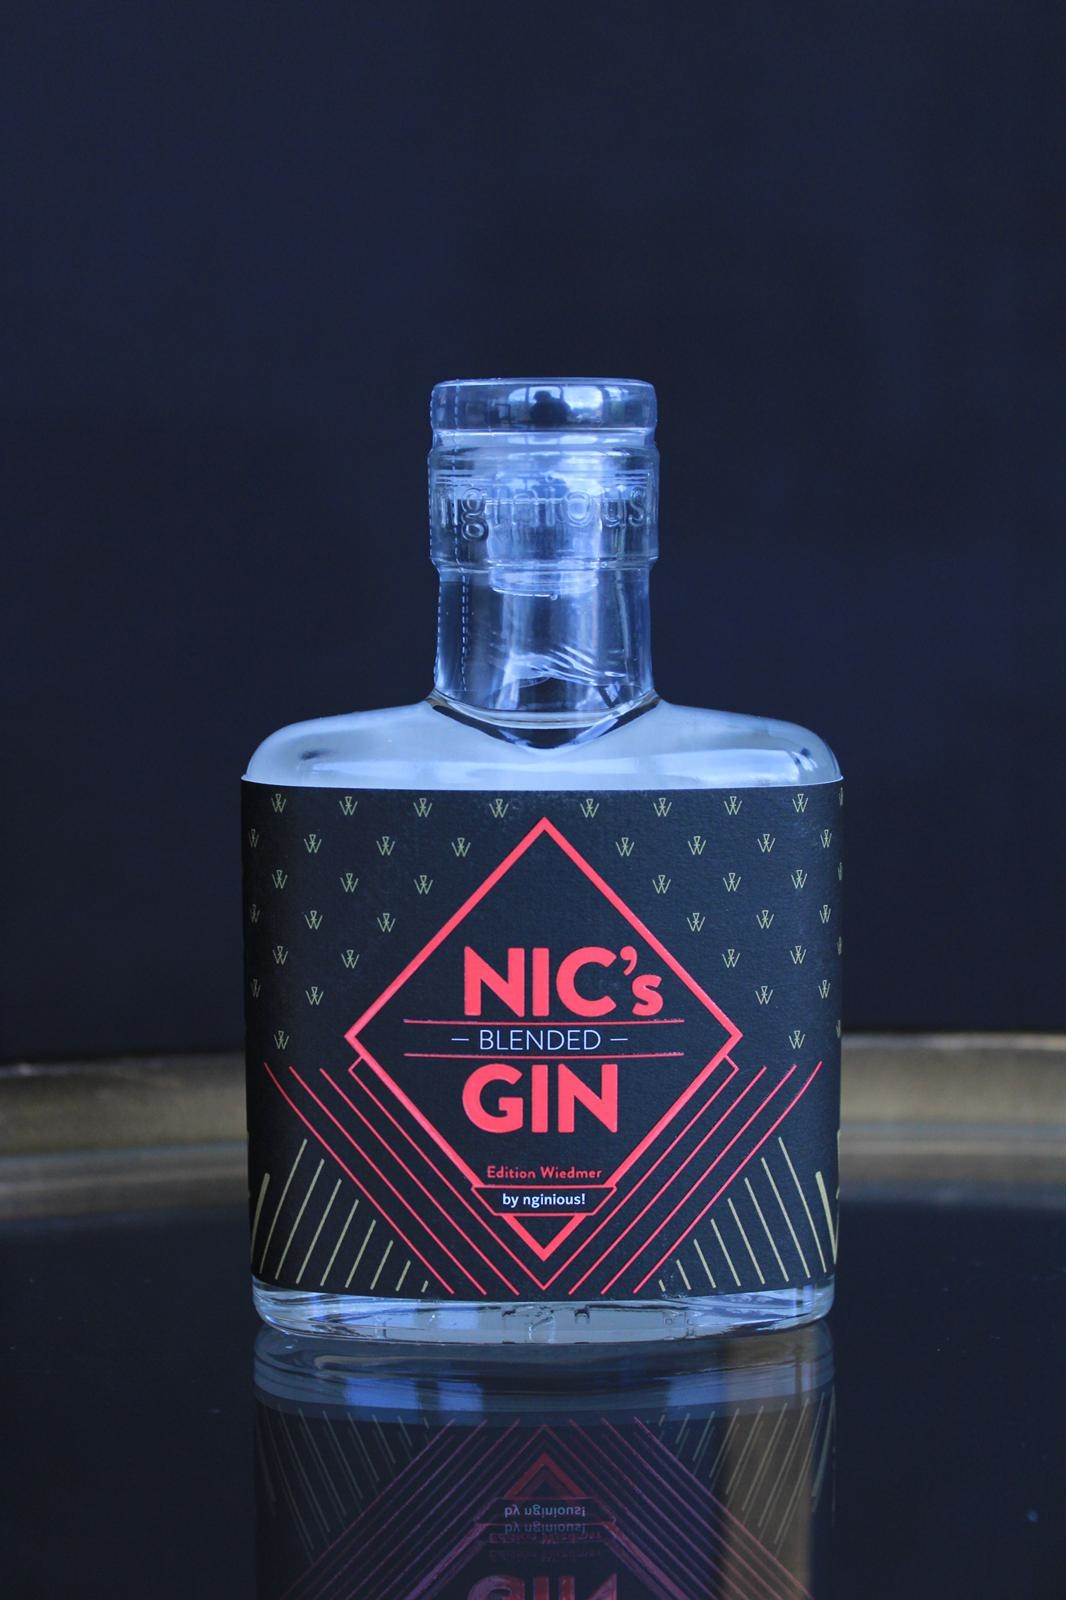 nginious! NIC's blended GIN by nginious! - Mini